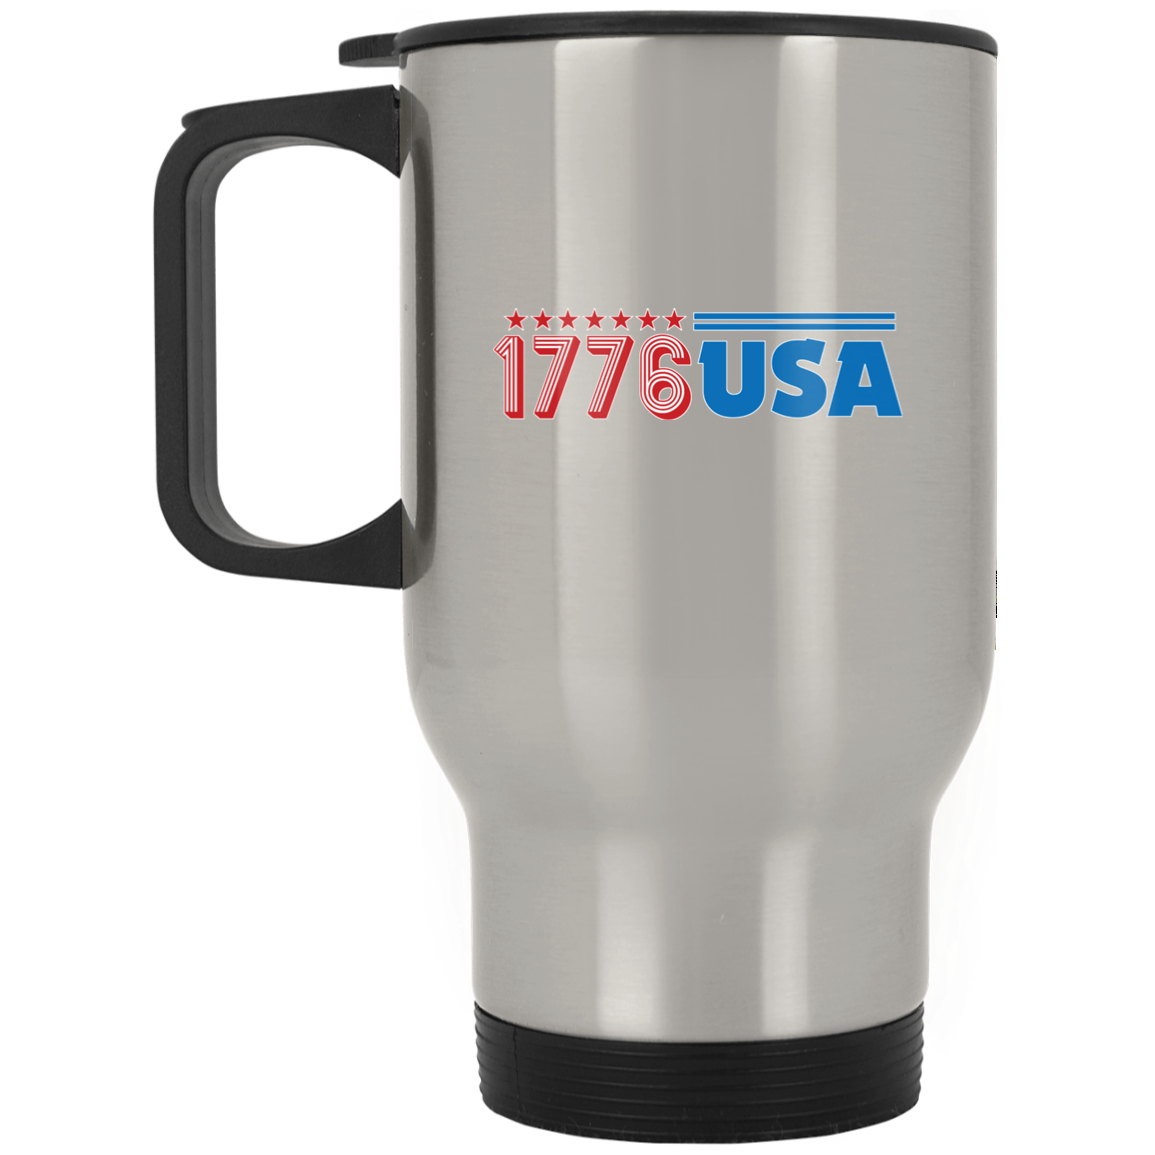 Patriotic - 1776 USA Silver Stainless Travel Mug